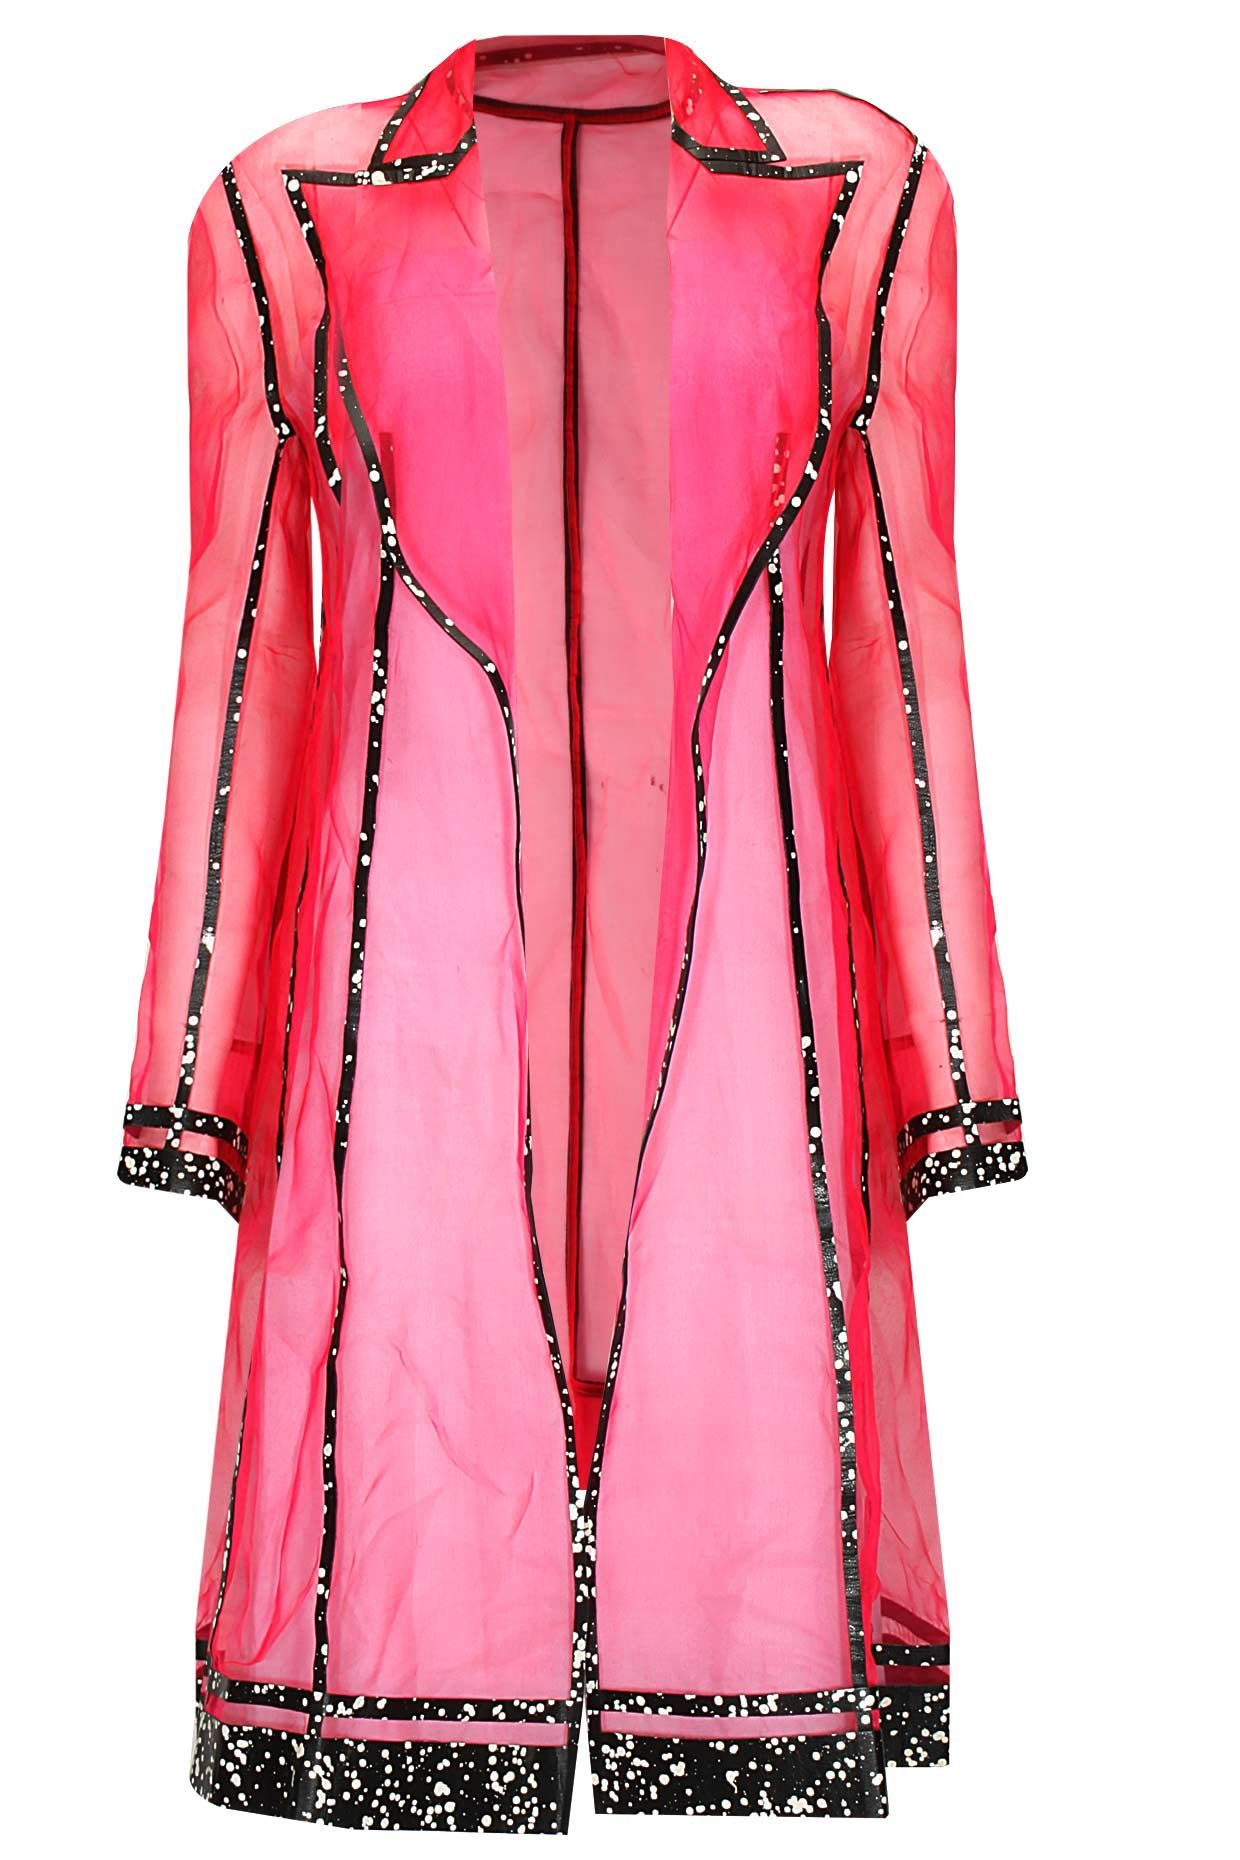 6245a9dd09 Hot pink leather inserts sheer overcoat by Huemn. Shop now  http ...